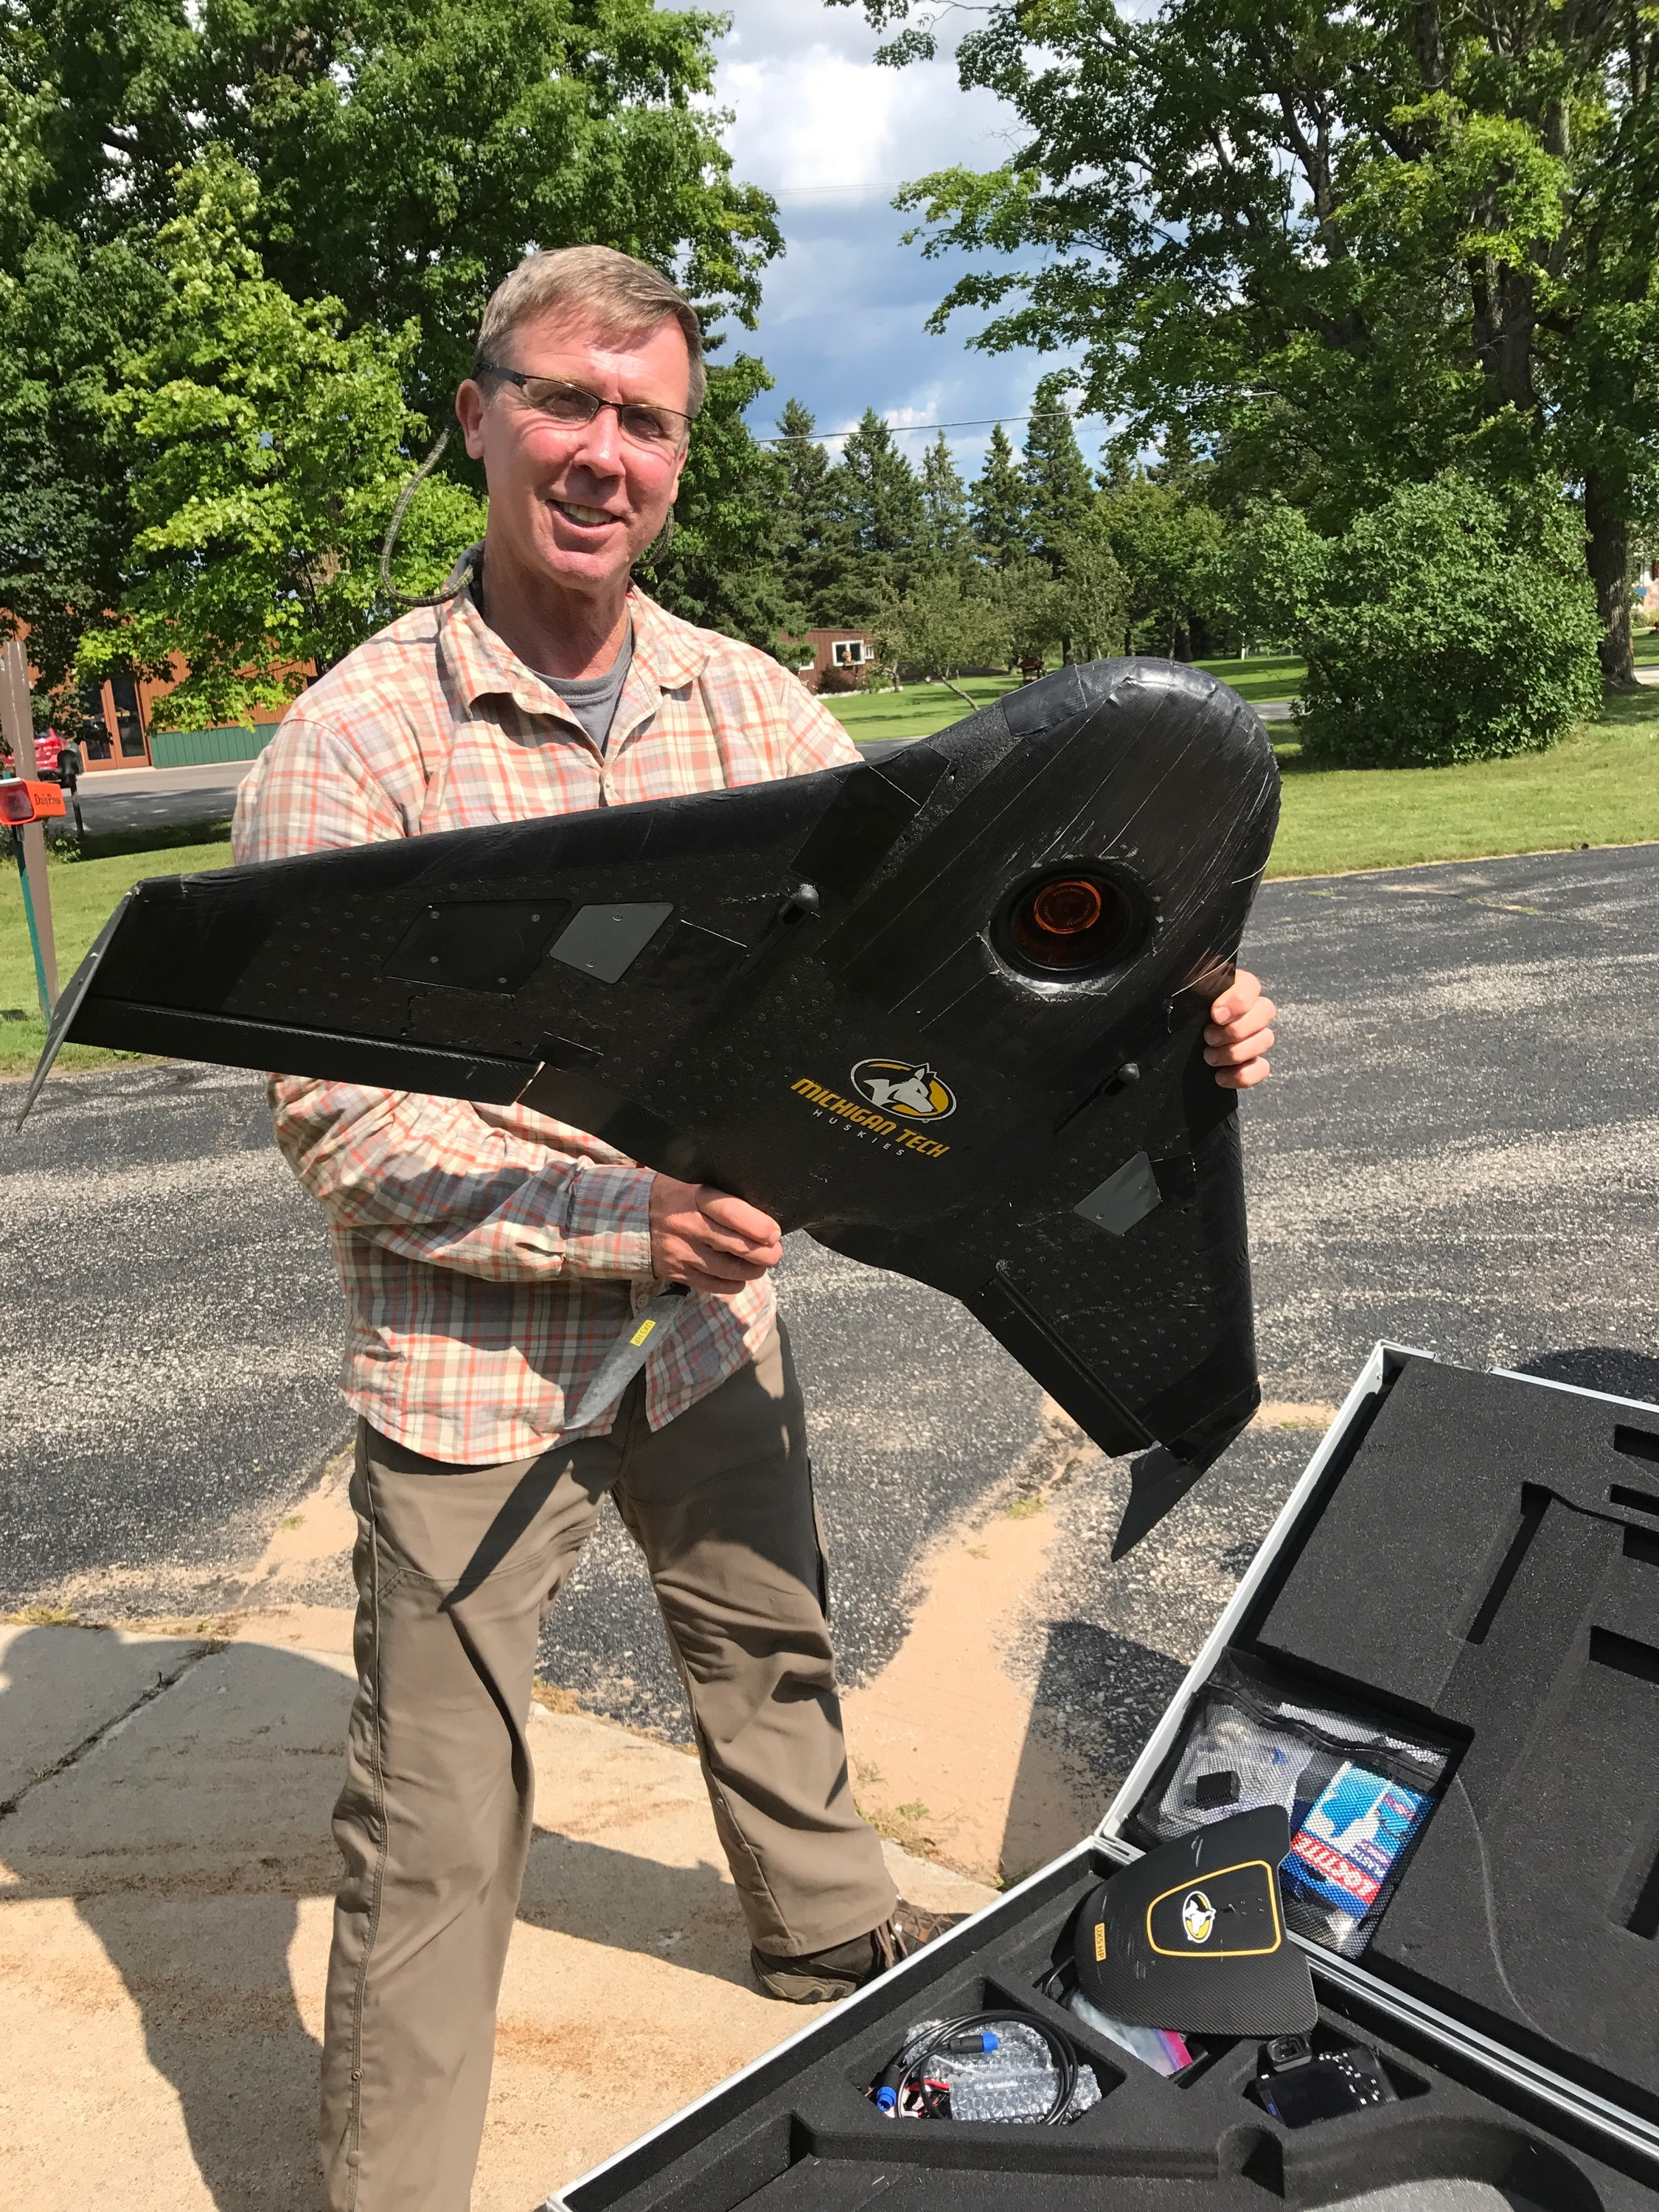 Dr. Curtis Edson, Assistant Professor of Remote Sensing and Geographic Information Systems at MTech,hold the UAV used in the drone flights over the Hiawatha National Forest. (Photo credit: US Forest Service.)